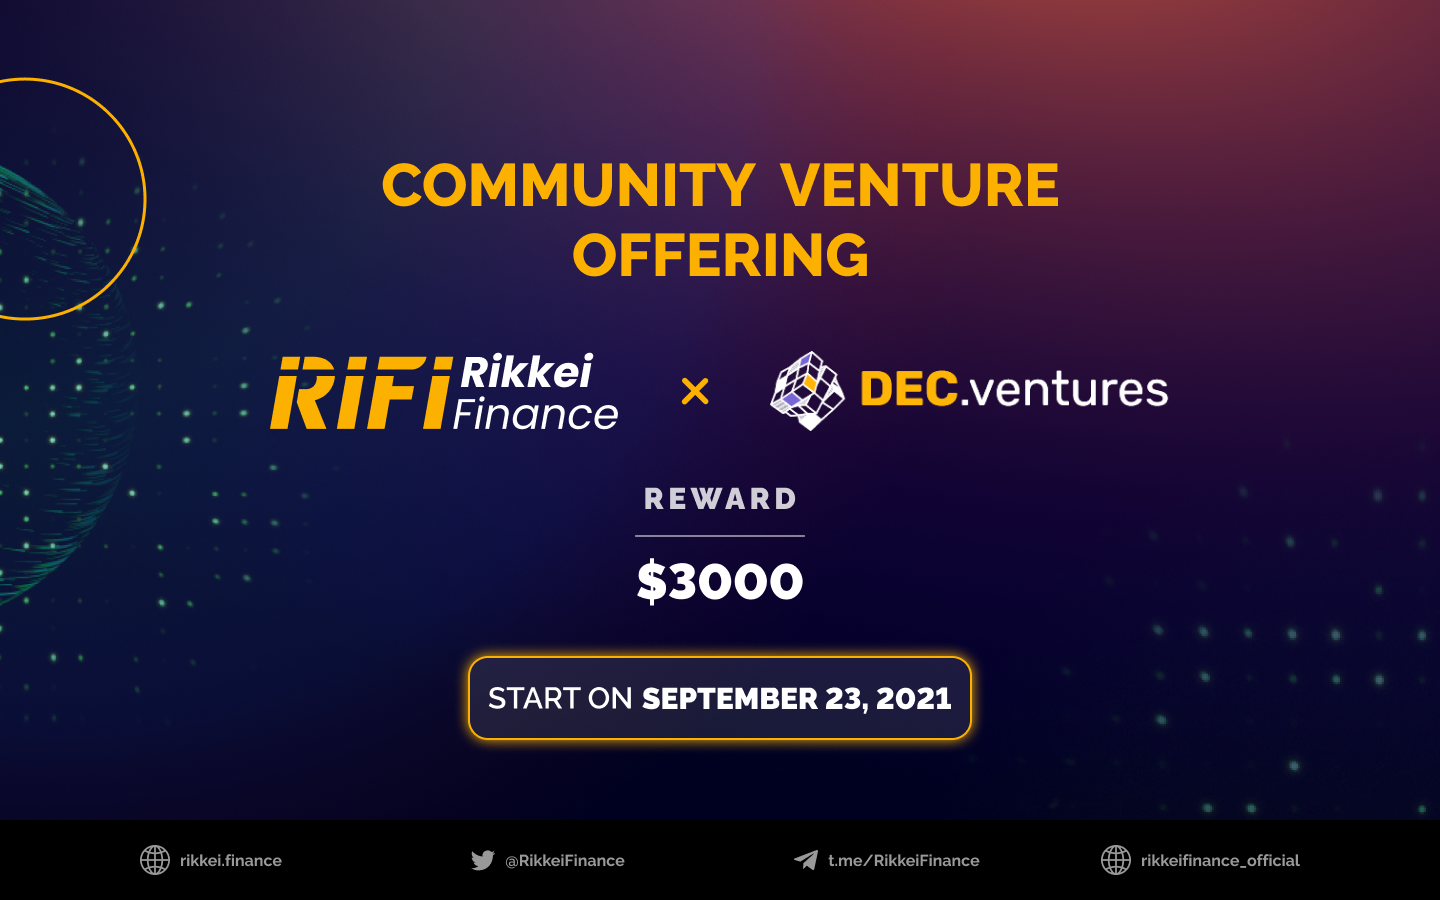 Rikkei Finance co-hosts a Community Venture Offering with their partner DEC Ventures